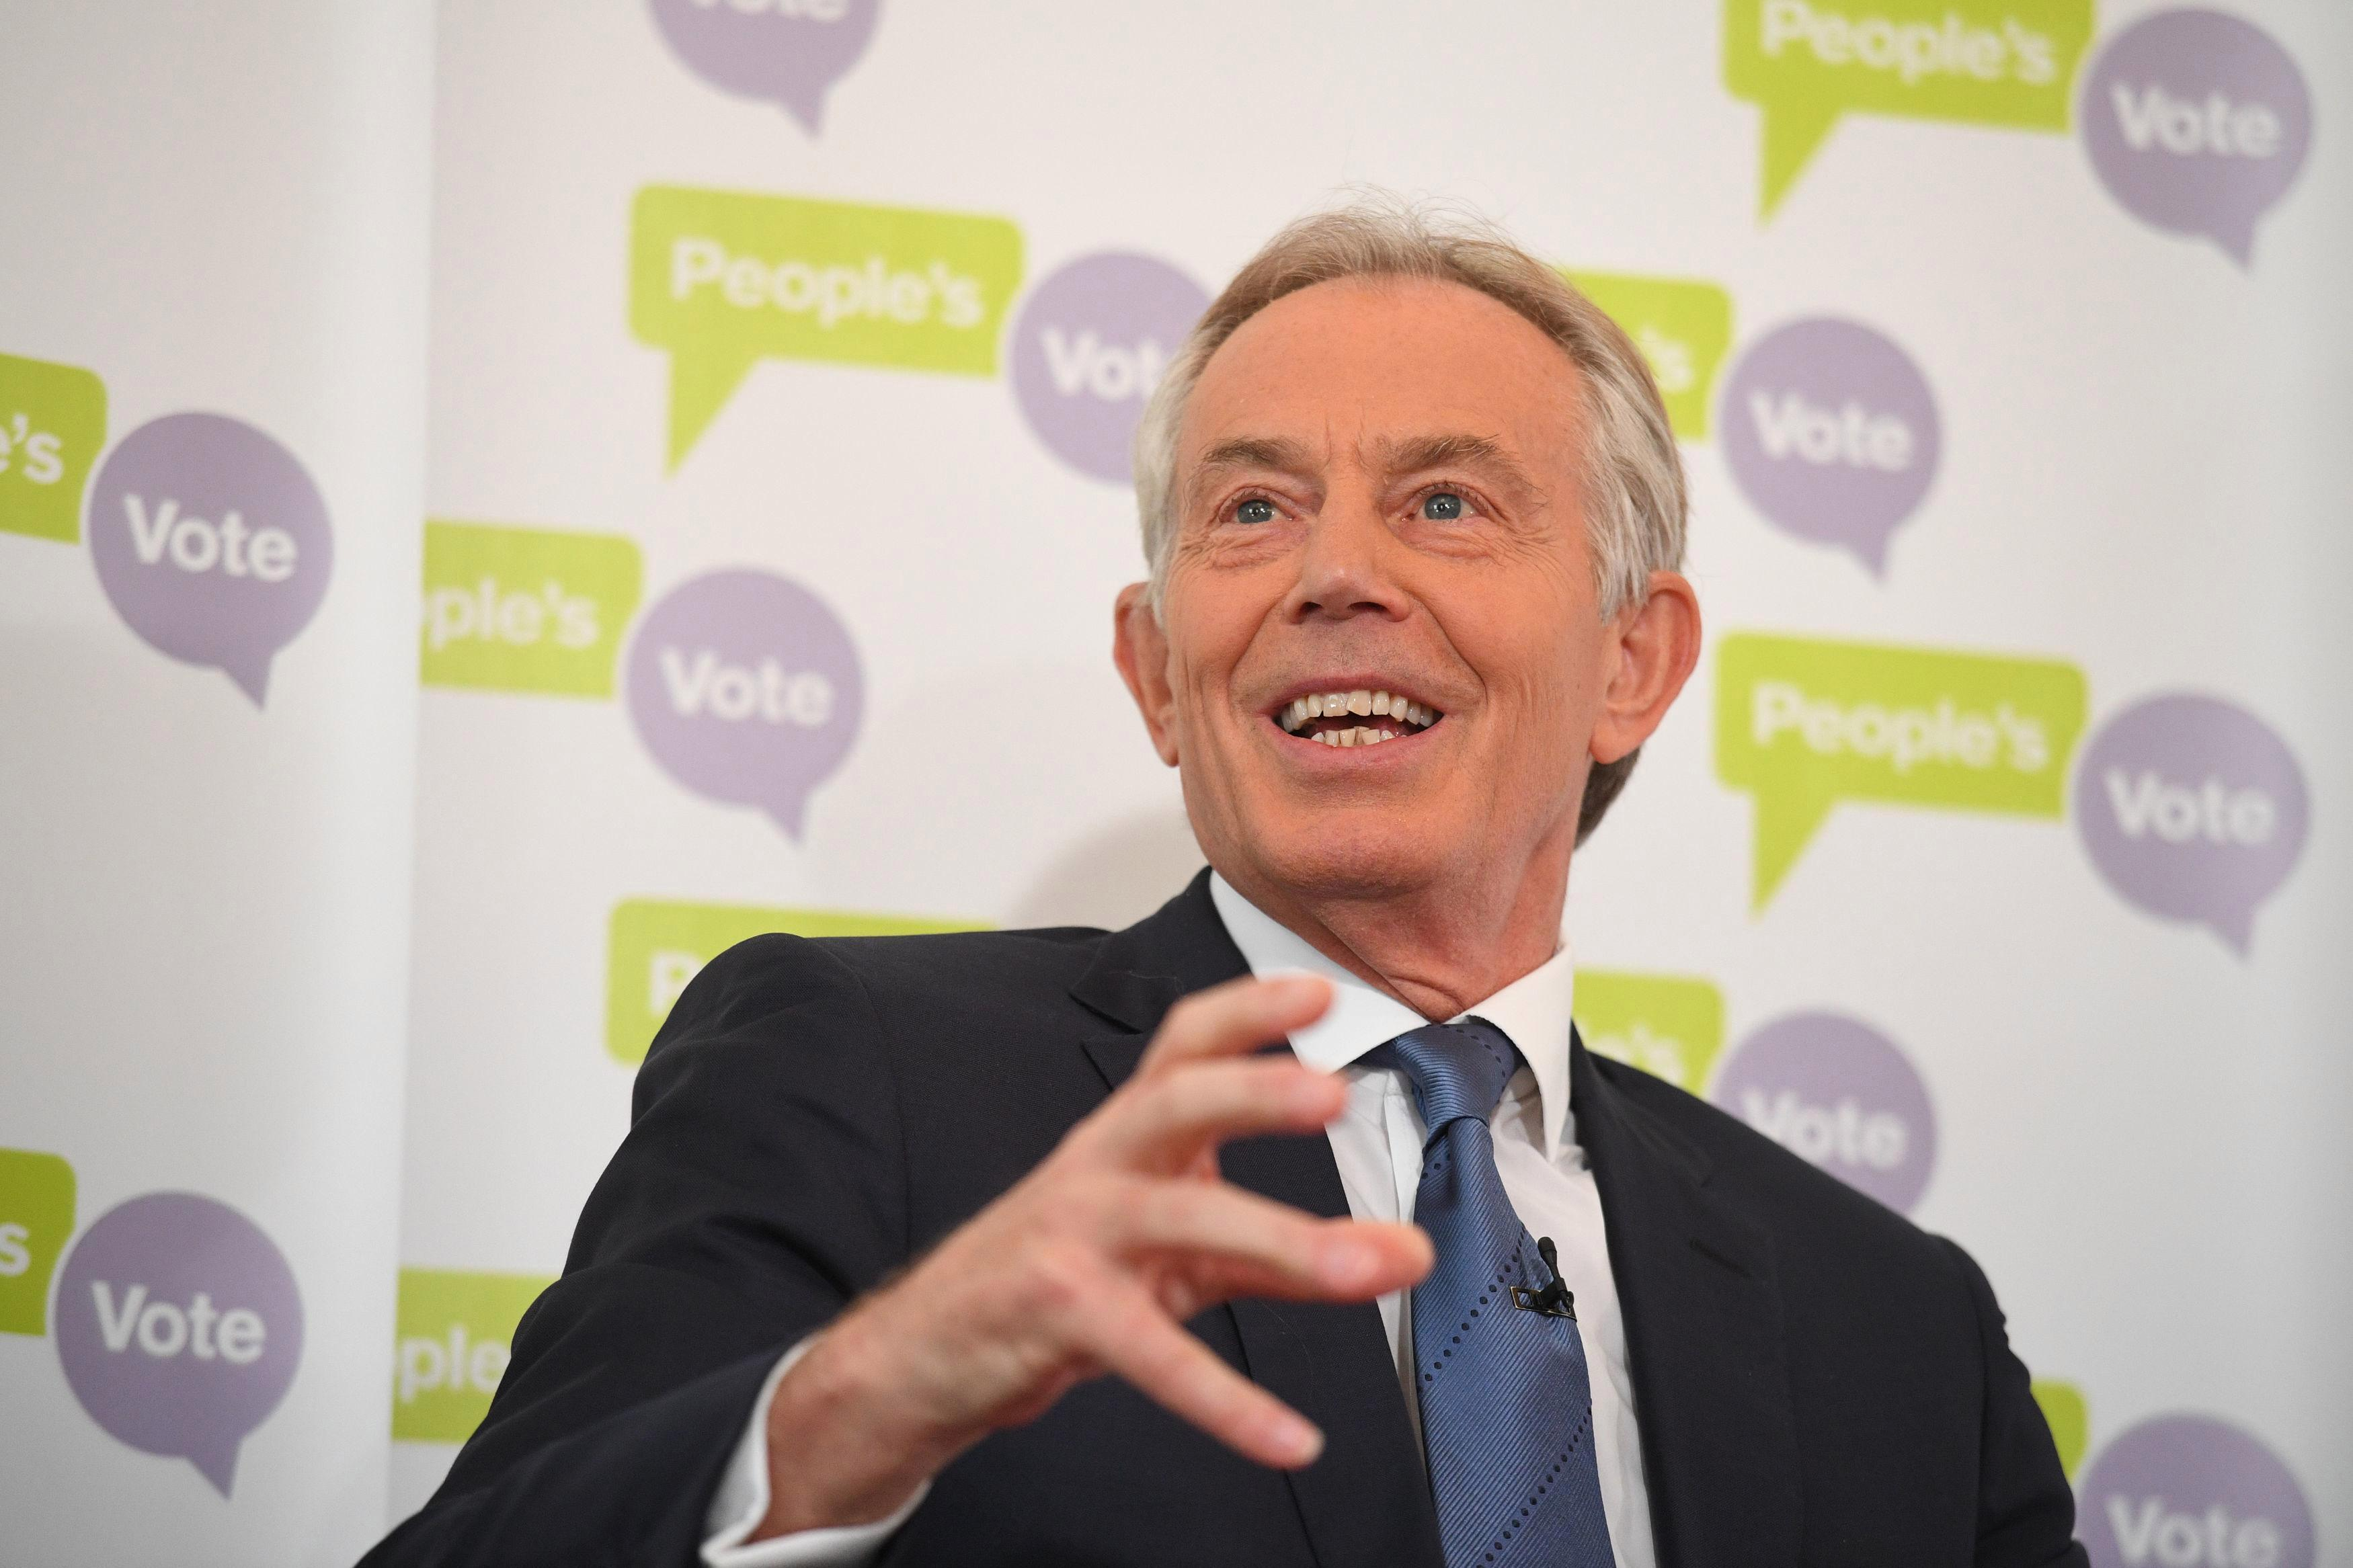 Tony Blair tells EU to be ready for second referendum on Brexit in weeks